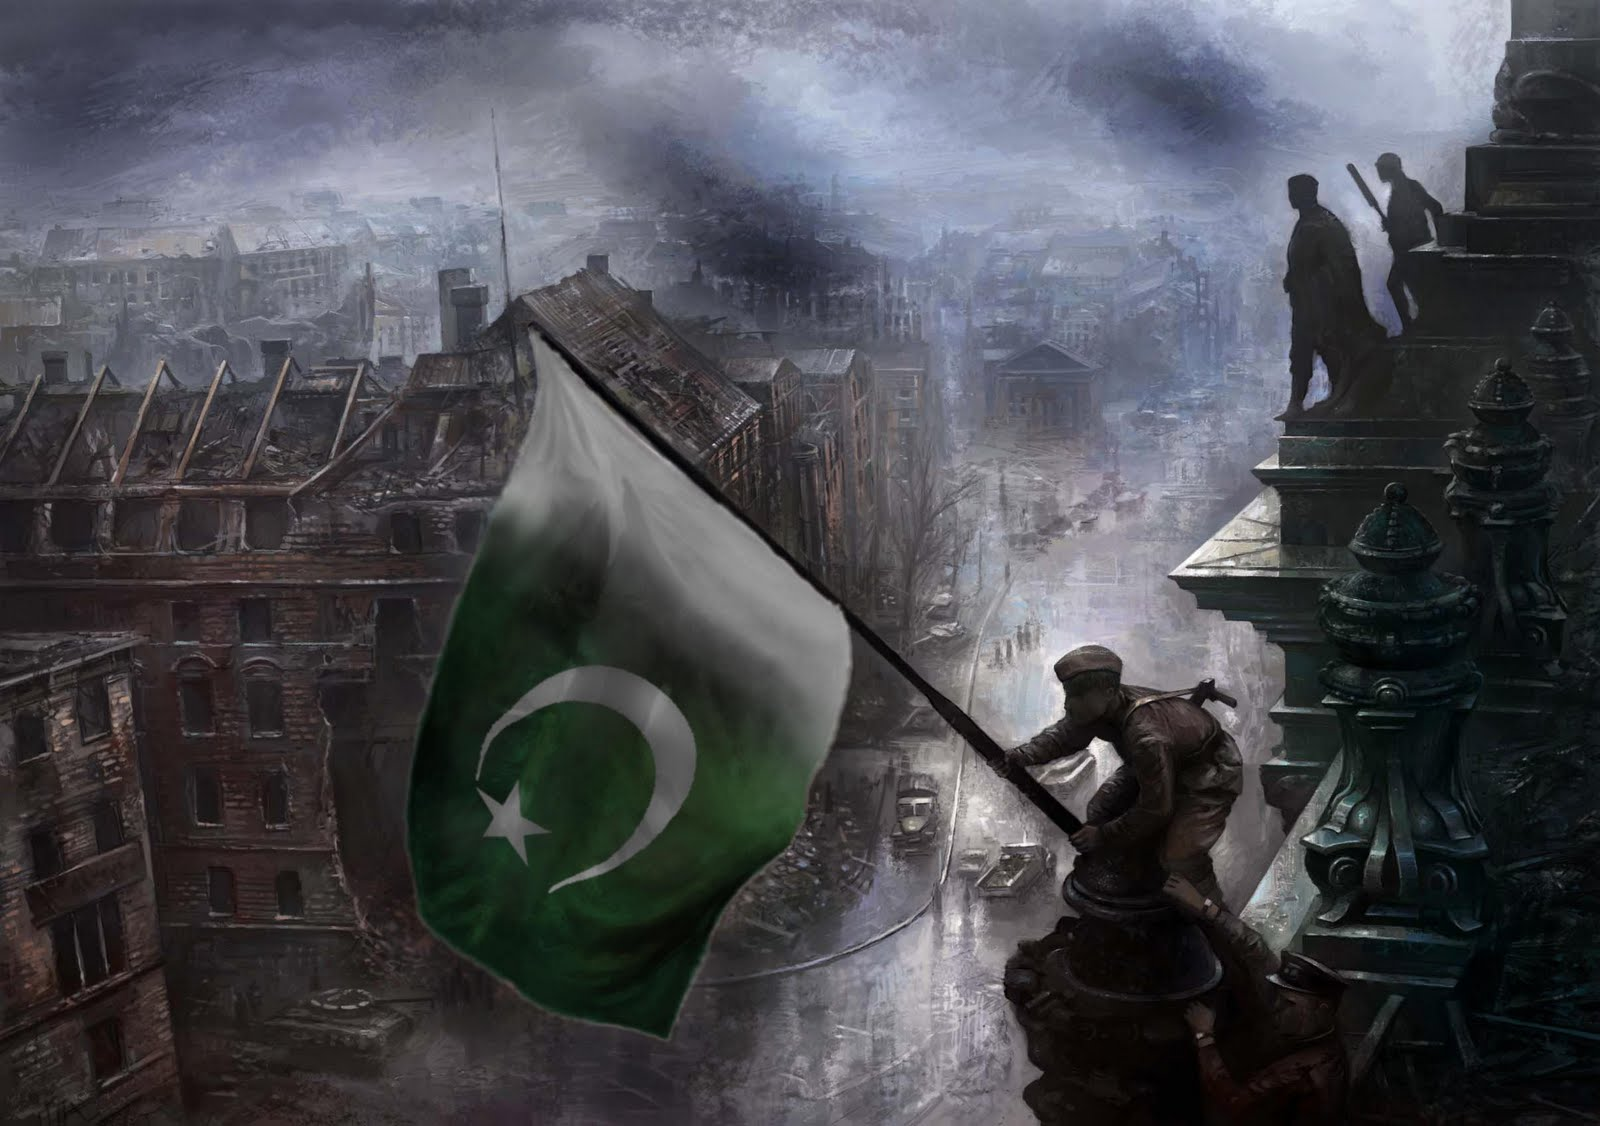 1600x1126 50+] Pak Army HD Wallpapers on WallpaperSafari